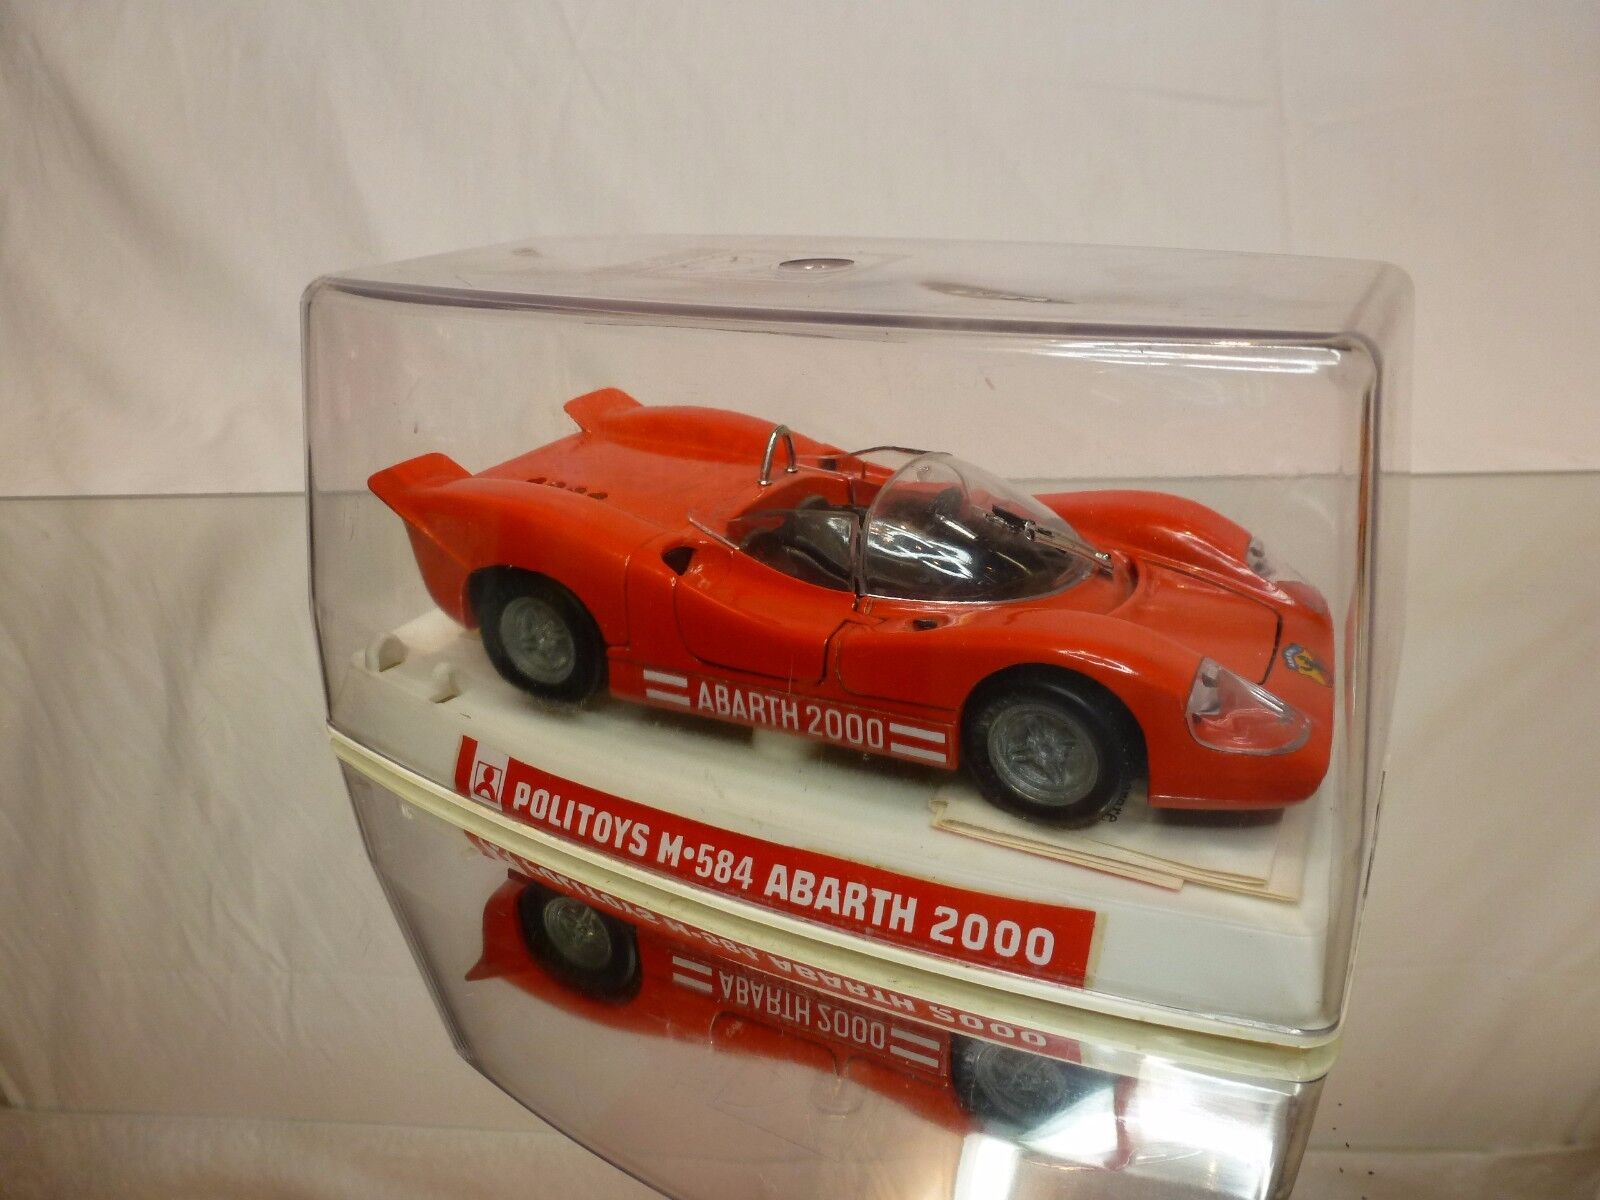 POLITOYS M584 ABARTH 2000 (FIAT) - rouge 1 25 - EXCELLENT IN BOX